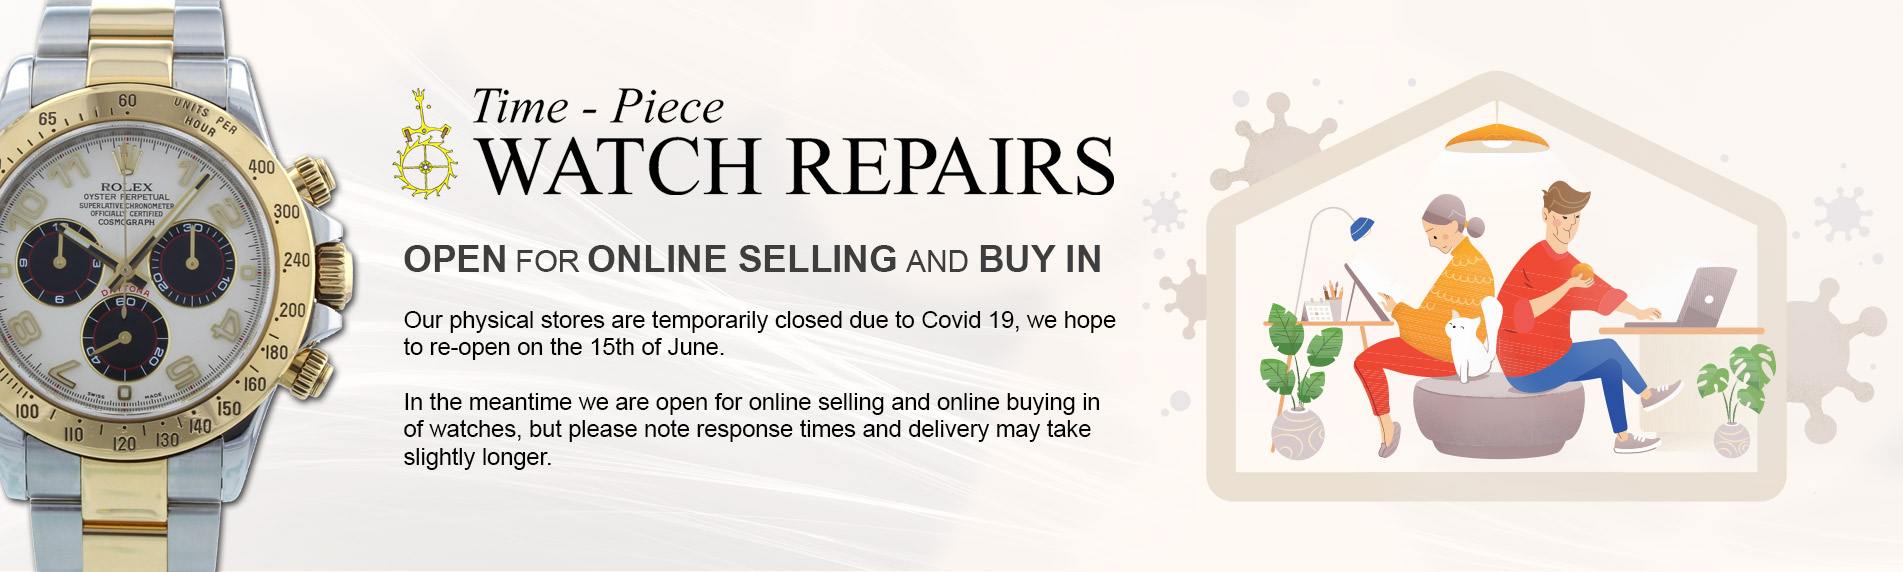 Online Rolex watch sales and trade in